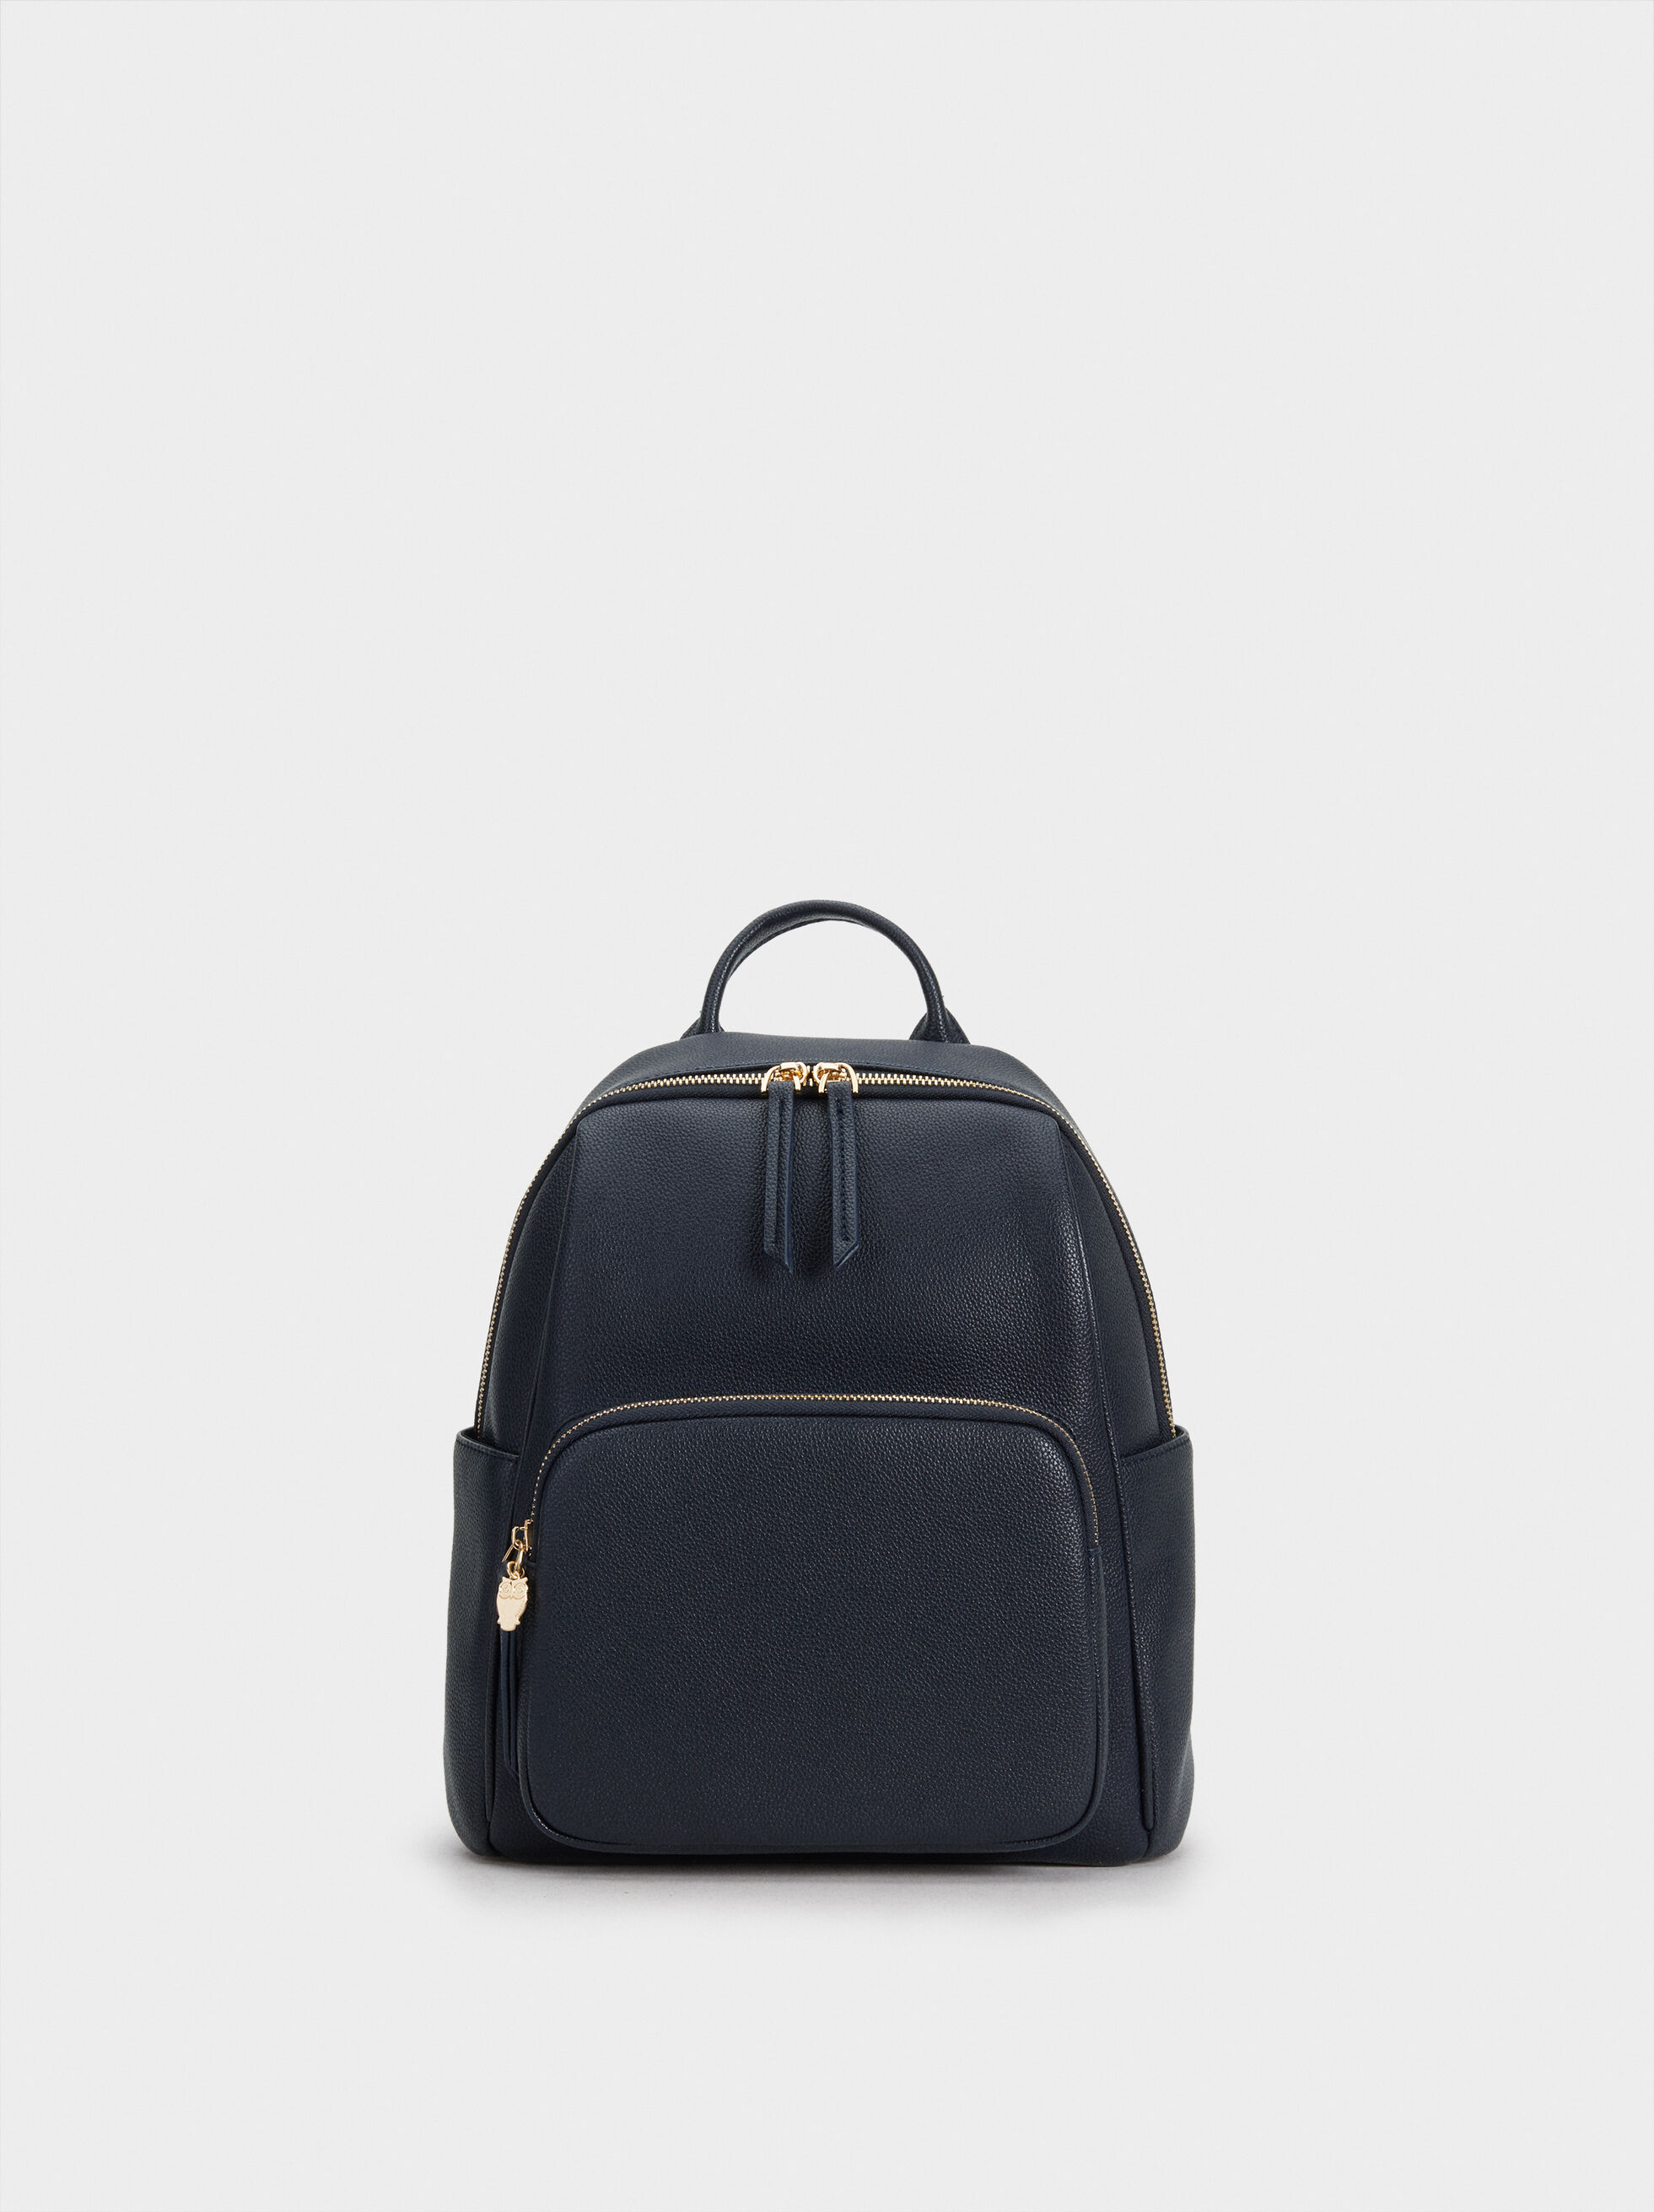 Backpack With Outer Pocket, Navy, hi-res